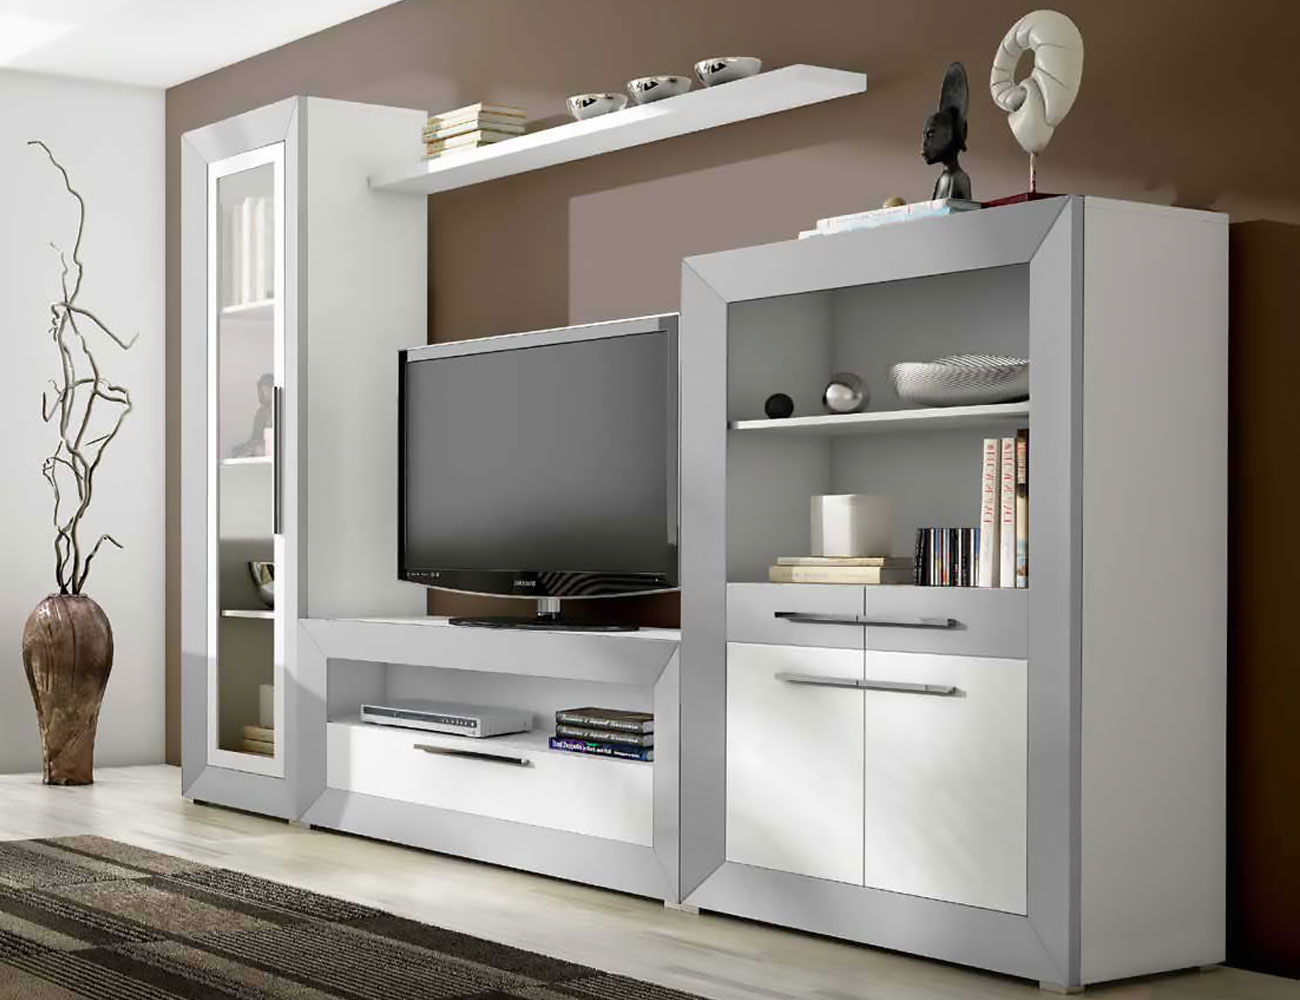 Mueble de sal n modular moderno en blanco con plata 2427 for Mueble salon moderno blanco